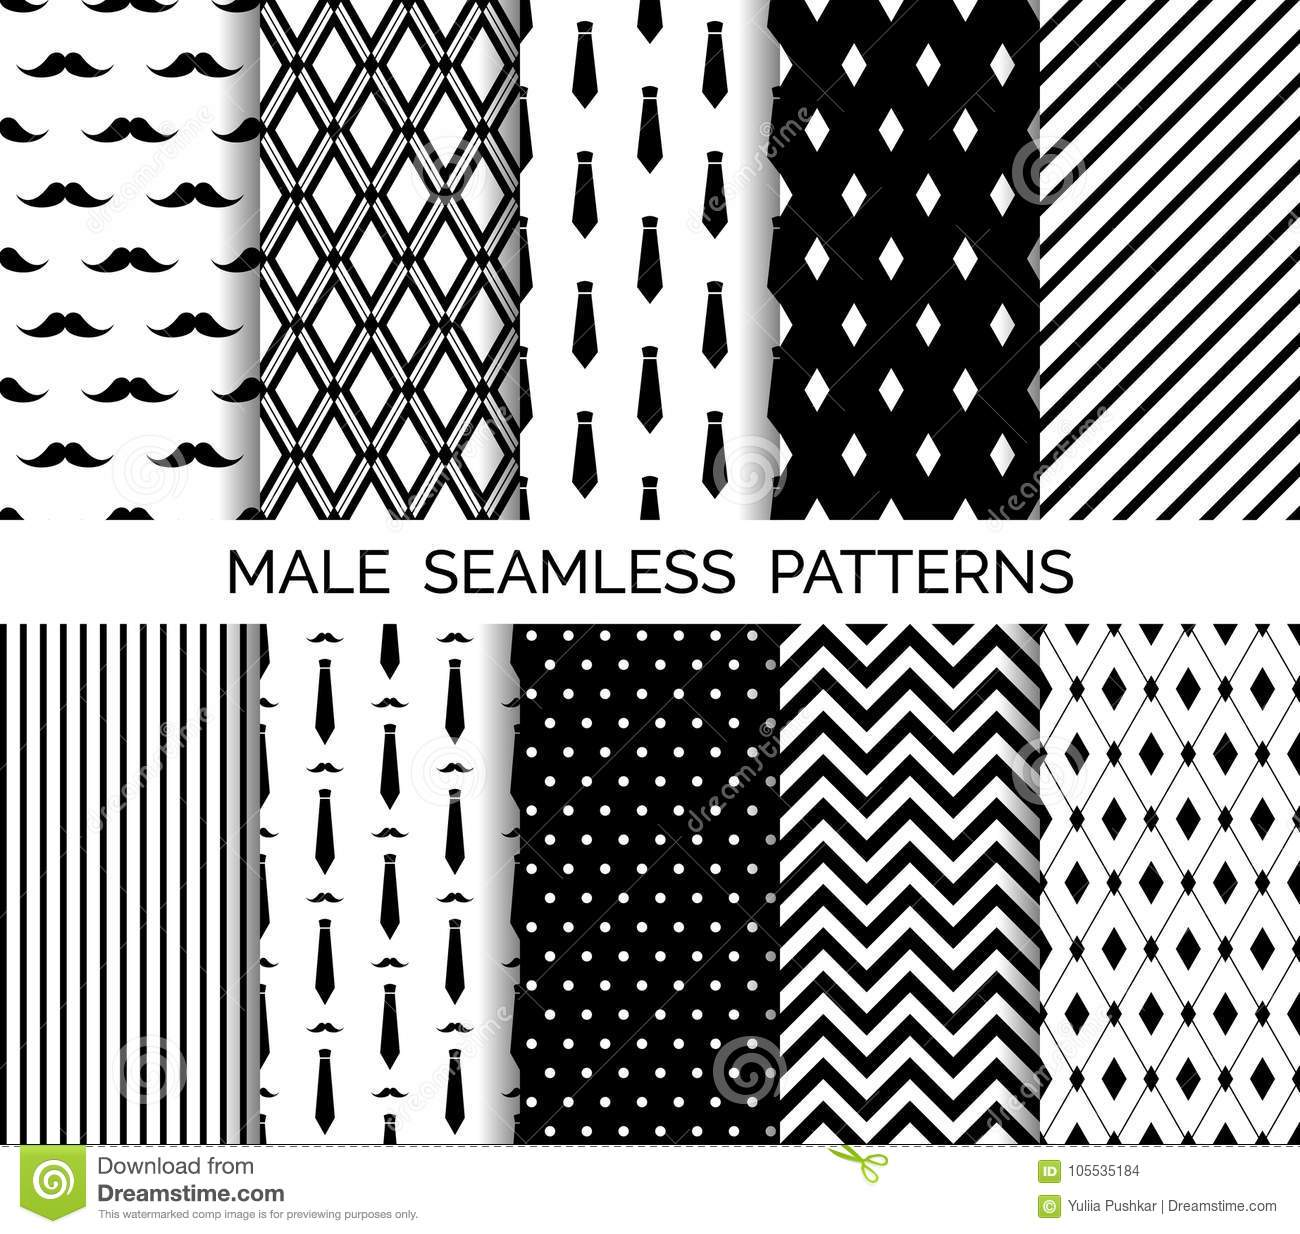 photograph about Printable Patterns titled Established Of Printable Vector Guy Seamless Designs. Black And